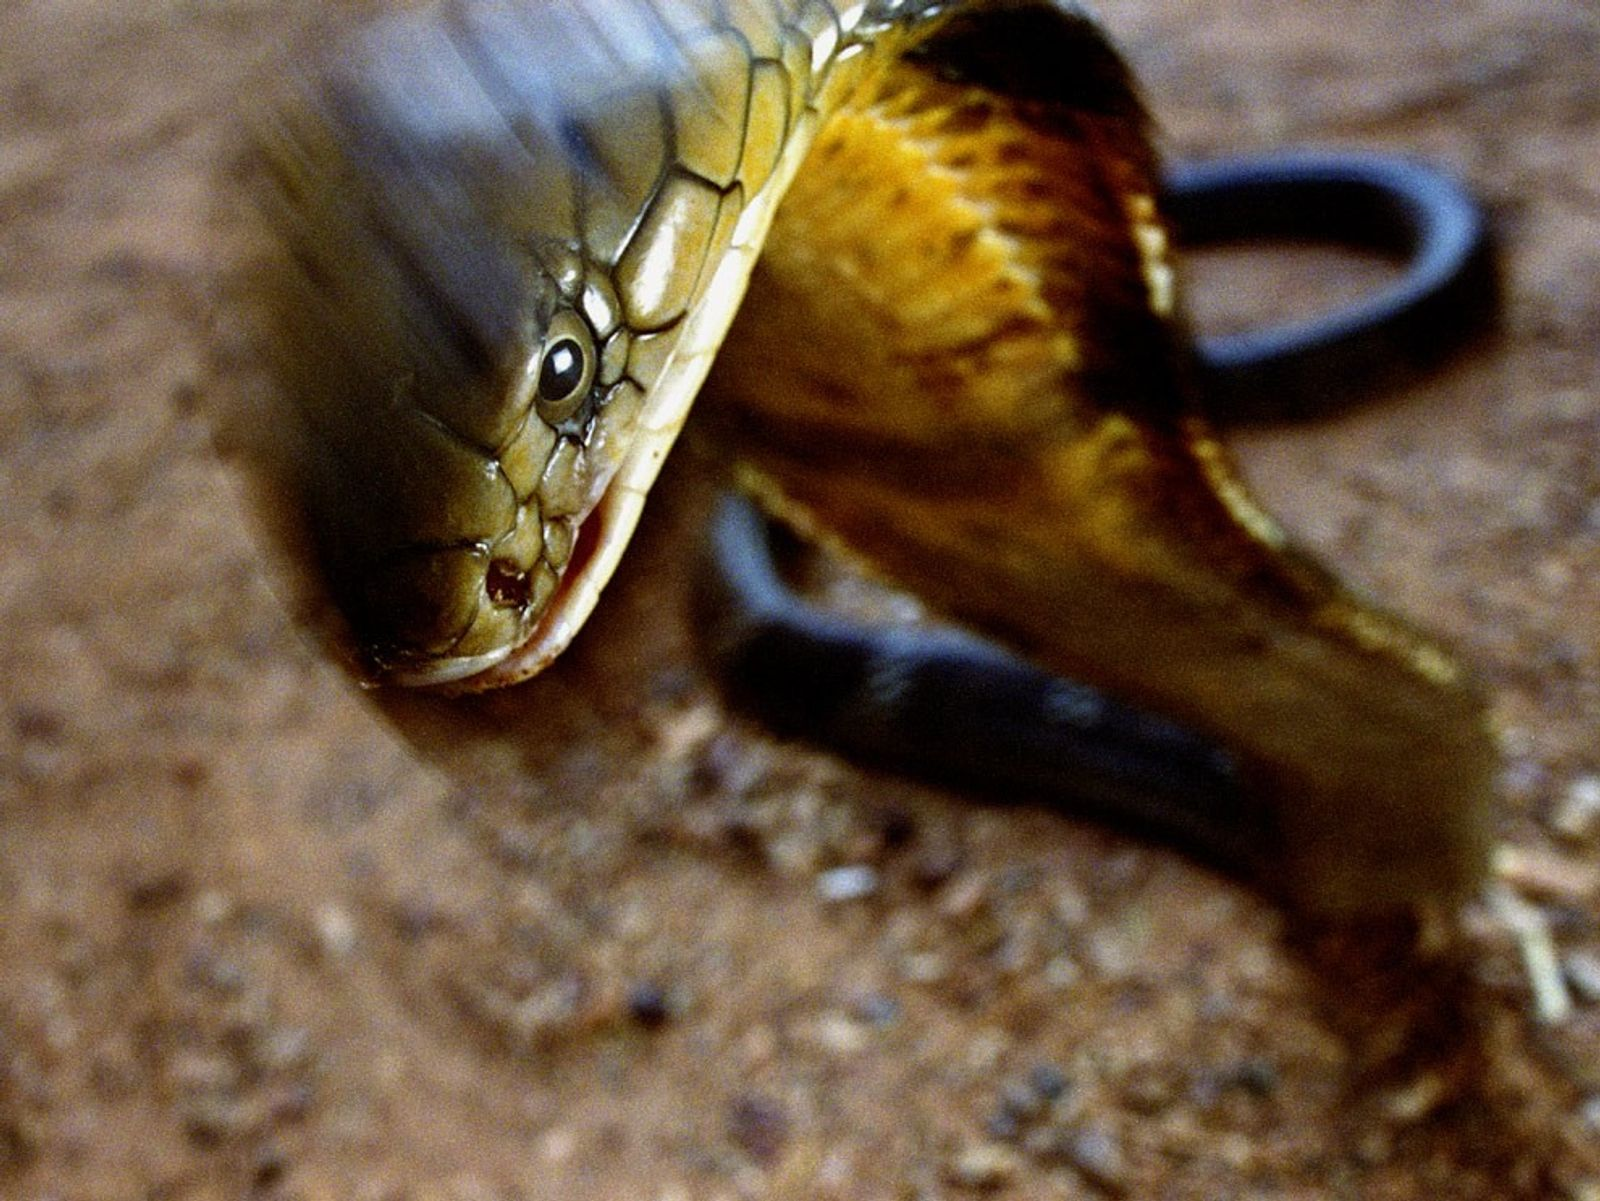 Images of extraordinary snakes